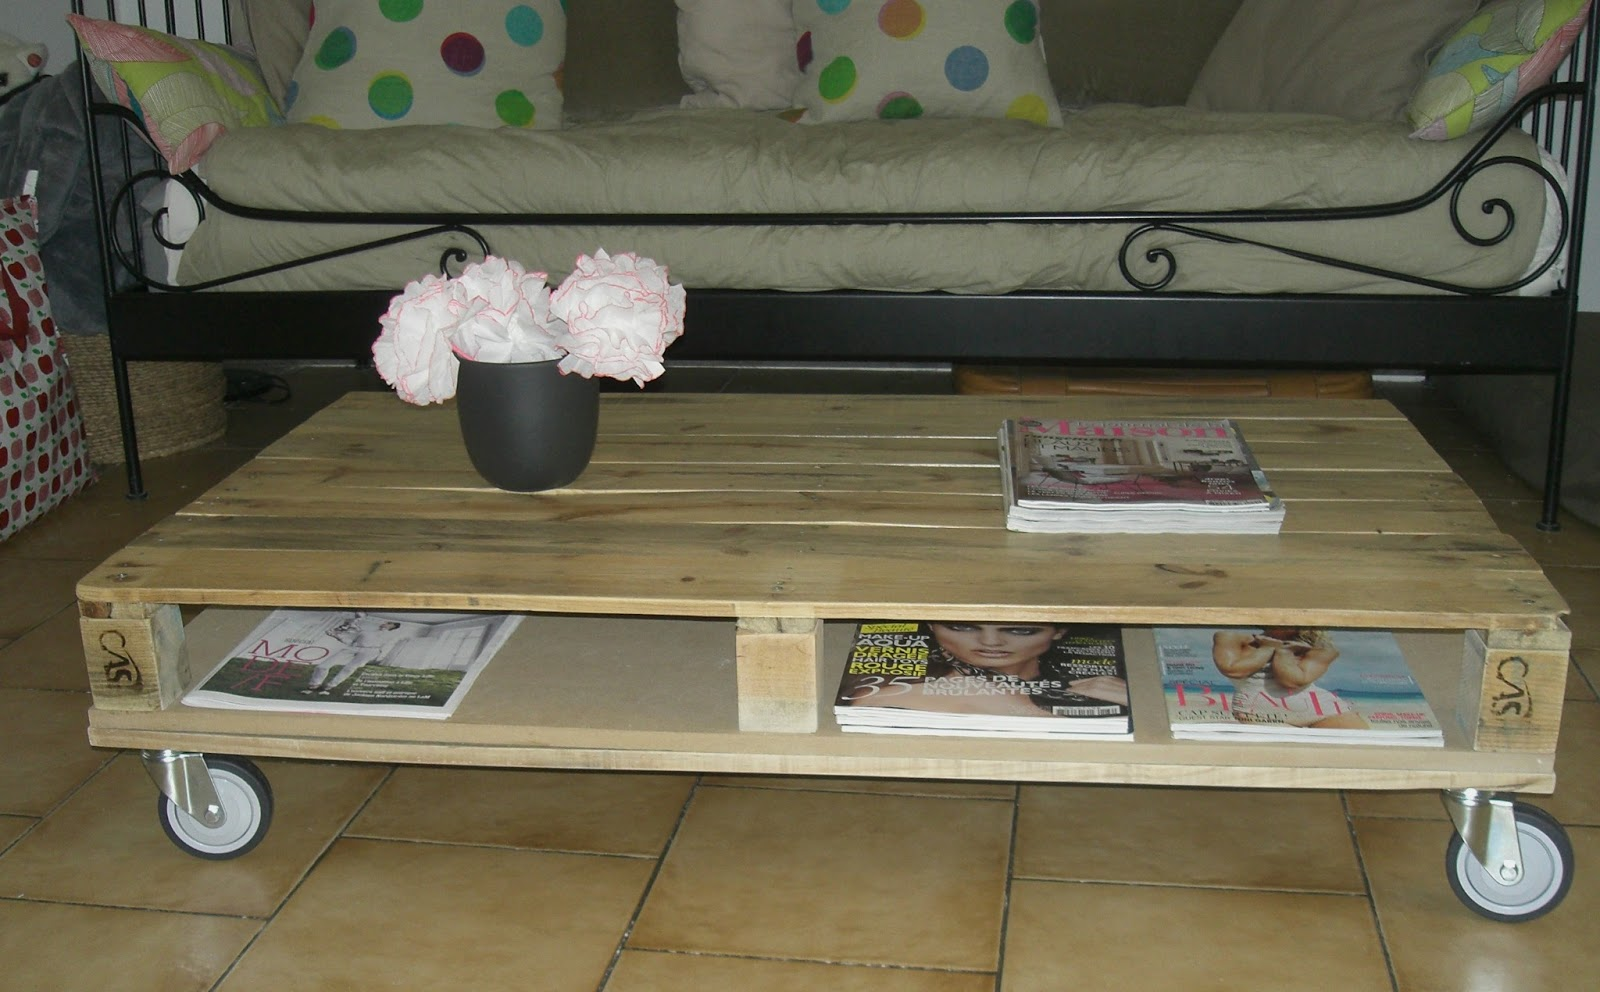 Gabulle in wonderland transformer une palette en table basse - Comment fabriquer une table de jardin en palette ...